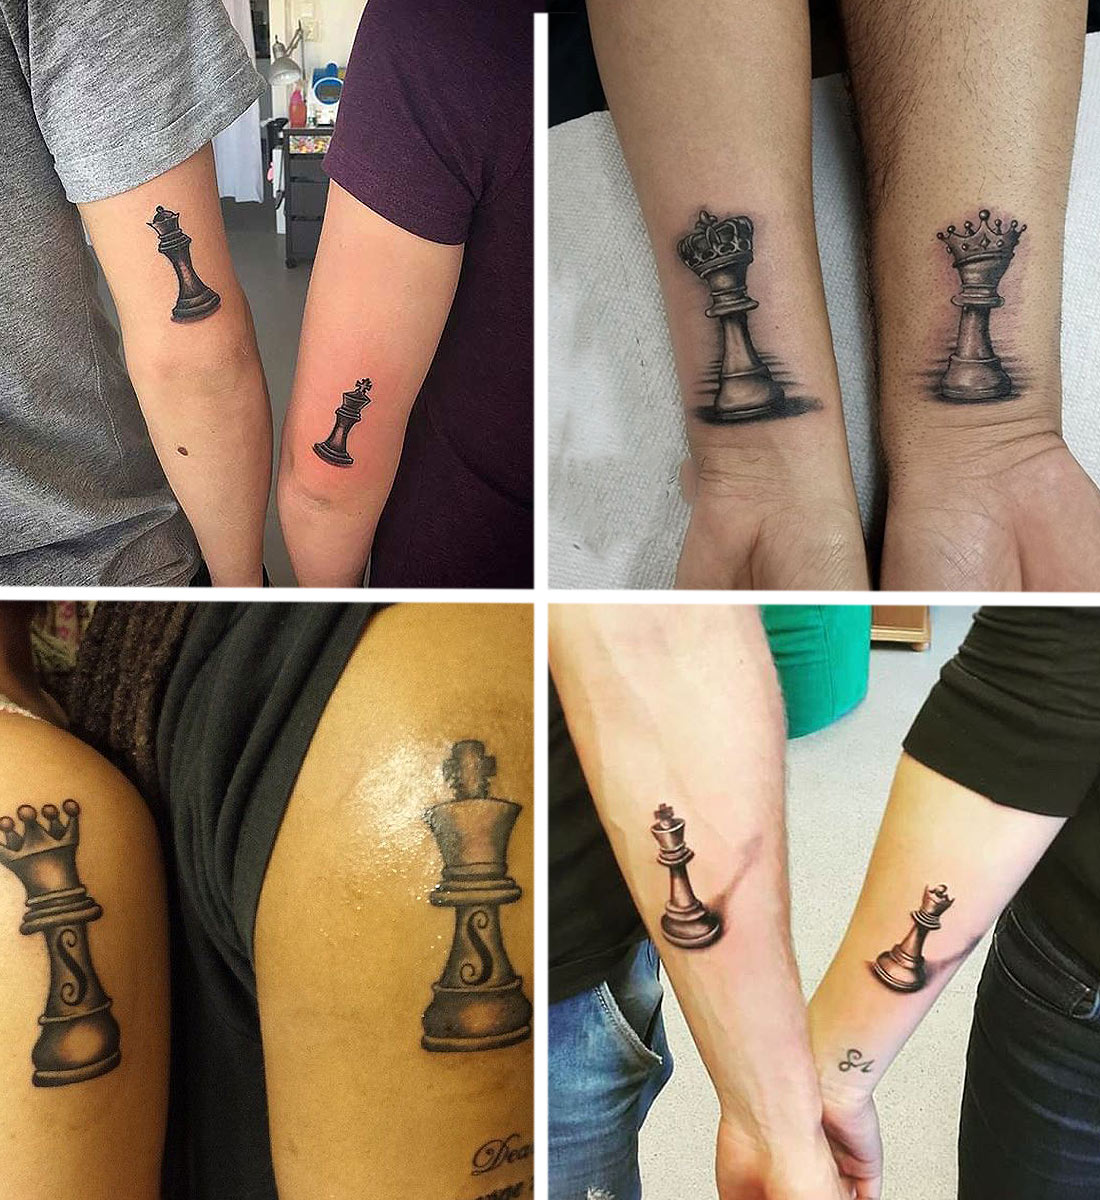 chess-tattoos-sports-tattoos-latest-couple-king-queen-chess-fields-tattoo-deas